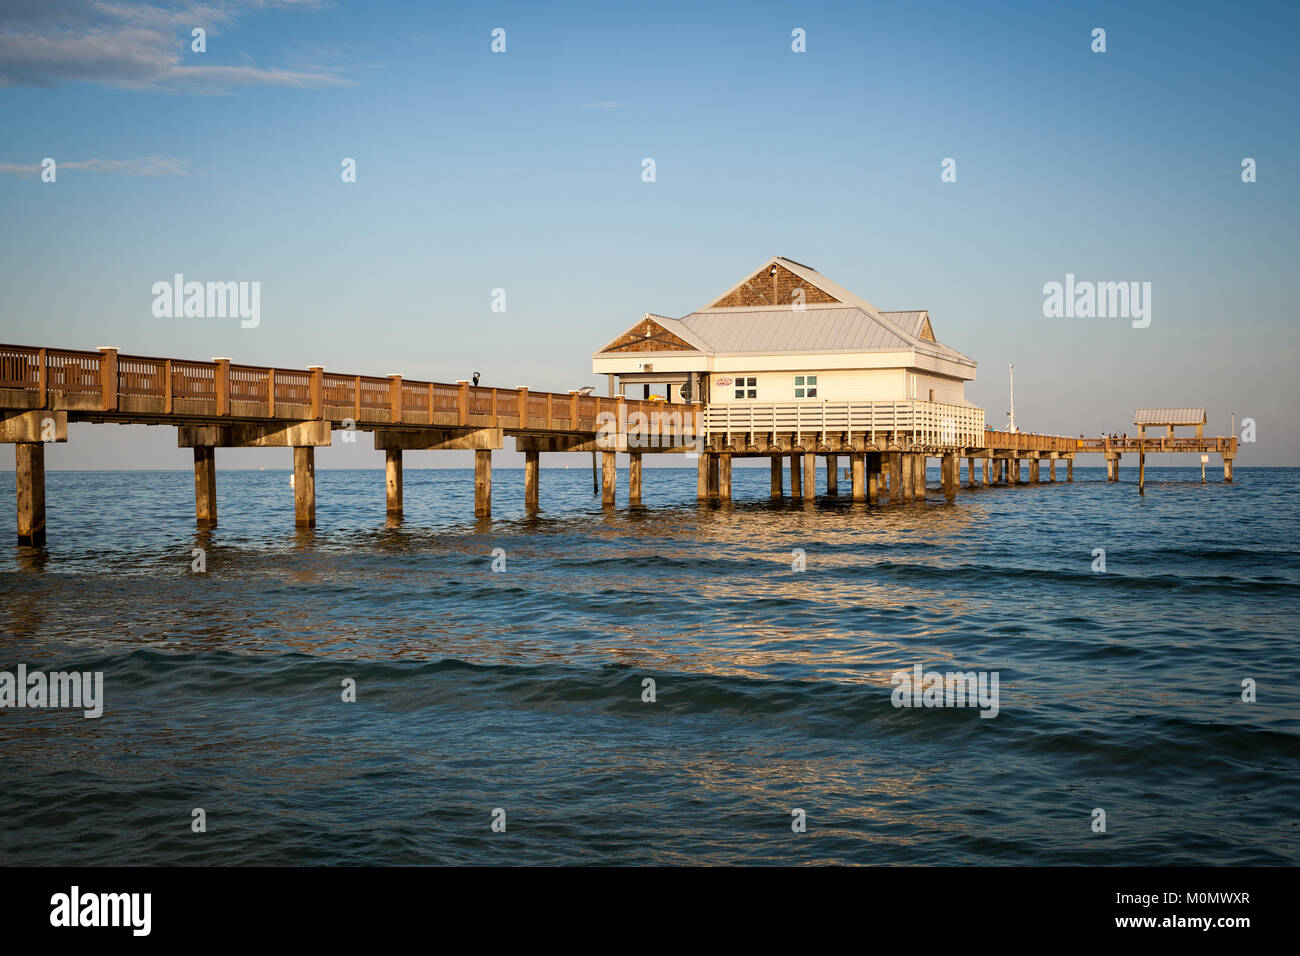 Fishing pier structure stock photos fishing pier for Clearwater beach fishing